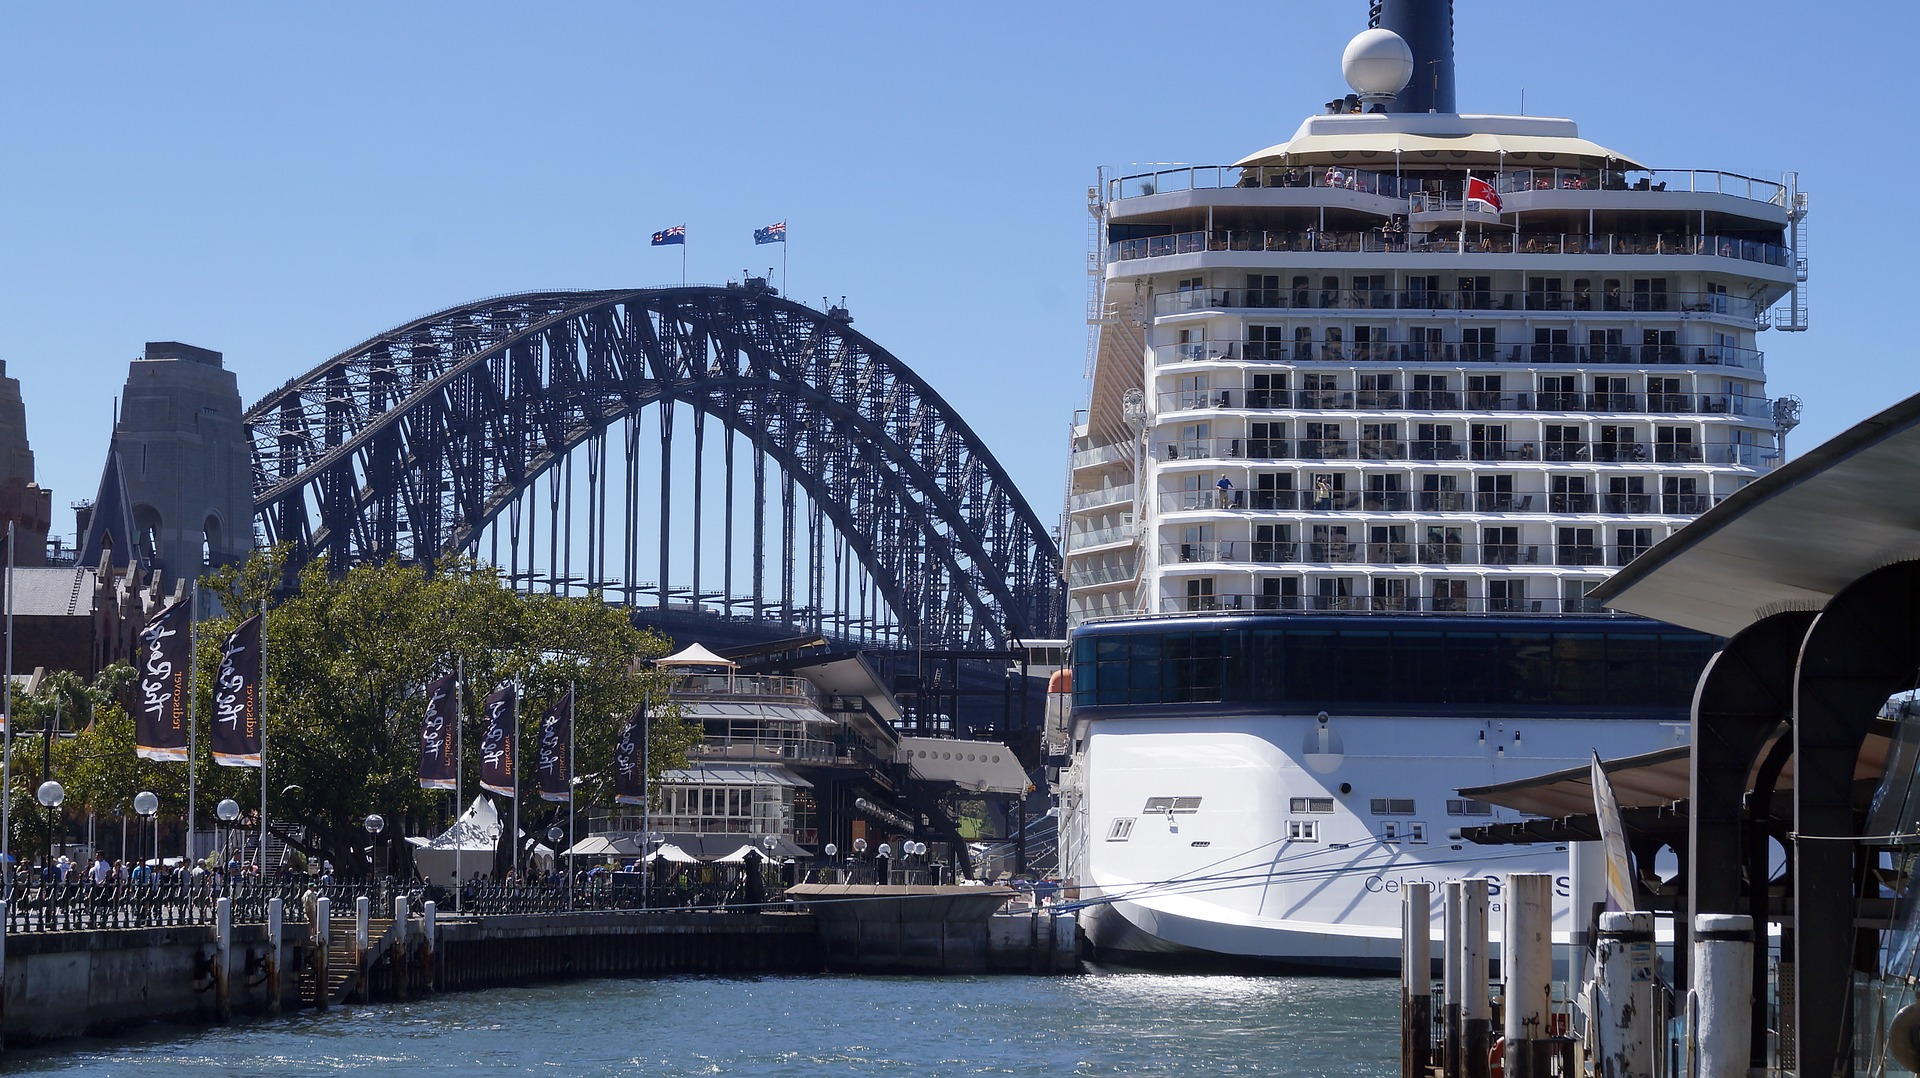 Cruise ship and Sydney Harbour Bridge, Sydney, Australia